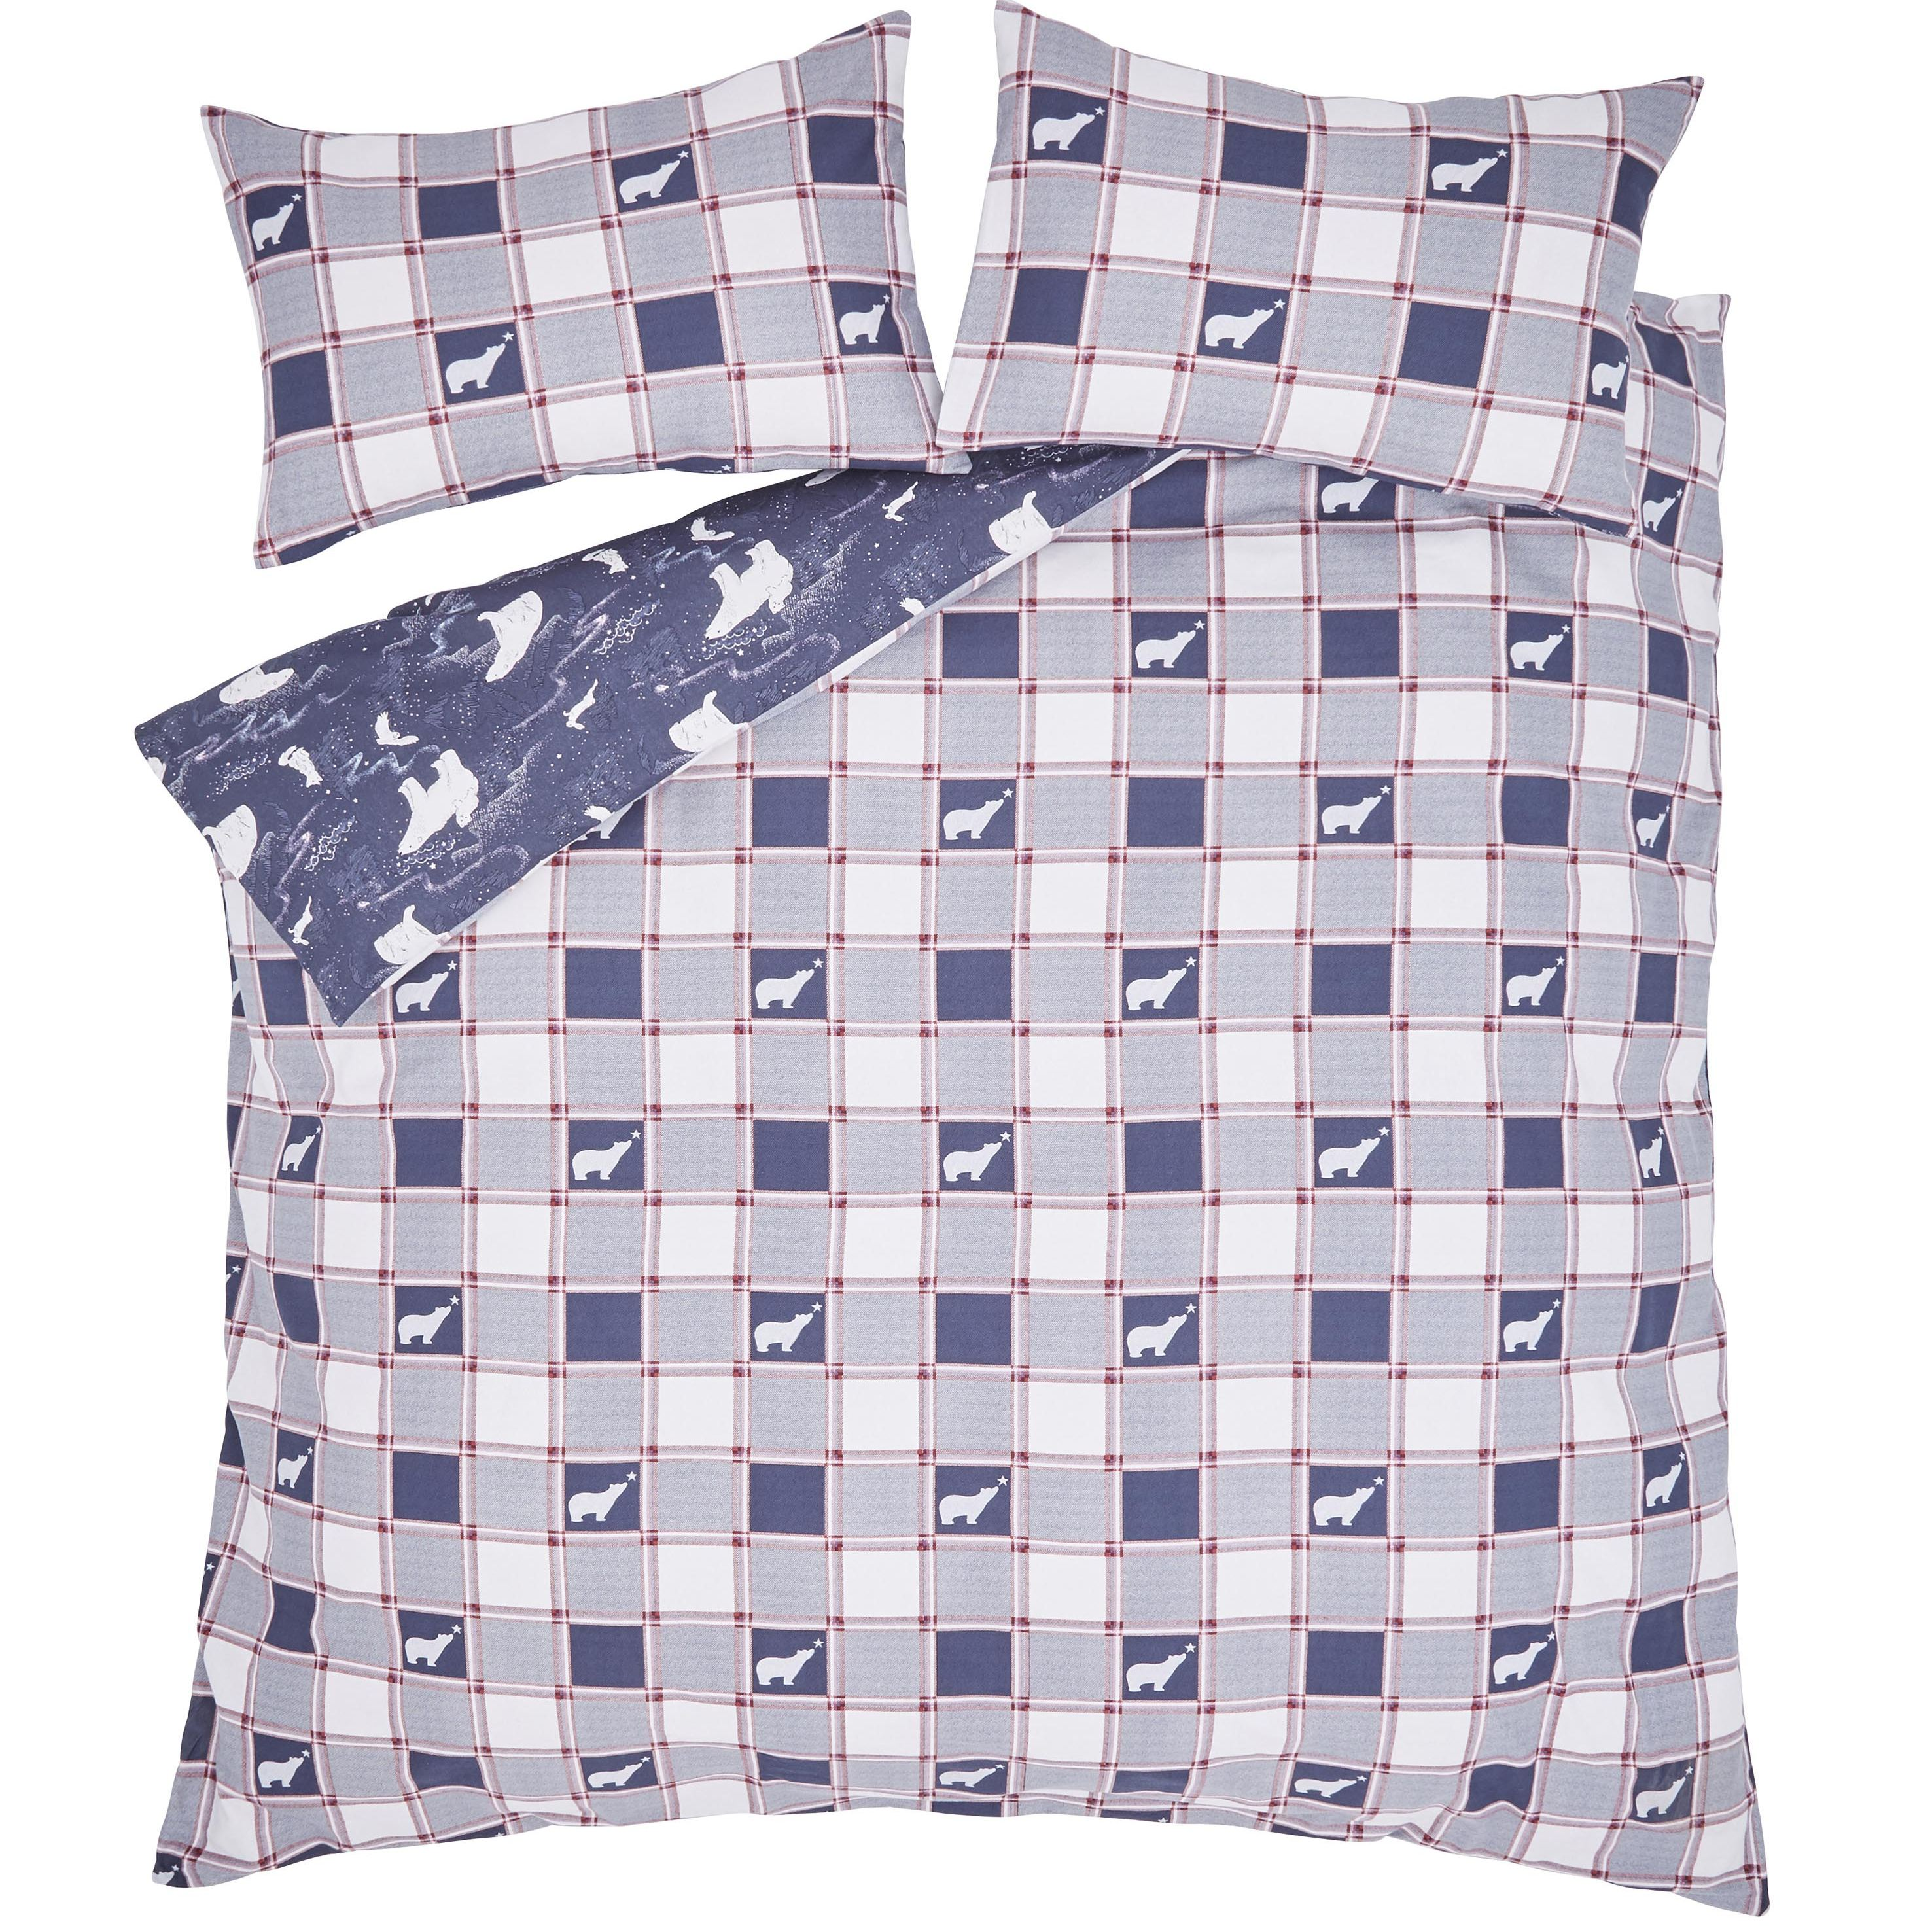 XMAS POLAR BEAR SINGLE QUILT SET - NAVY